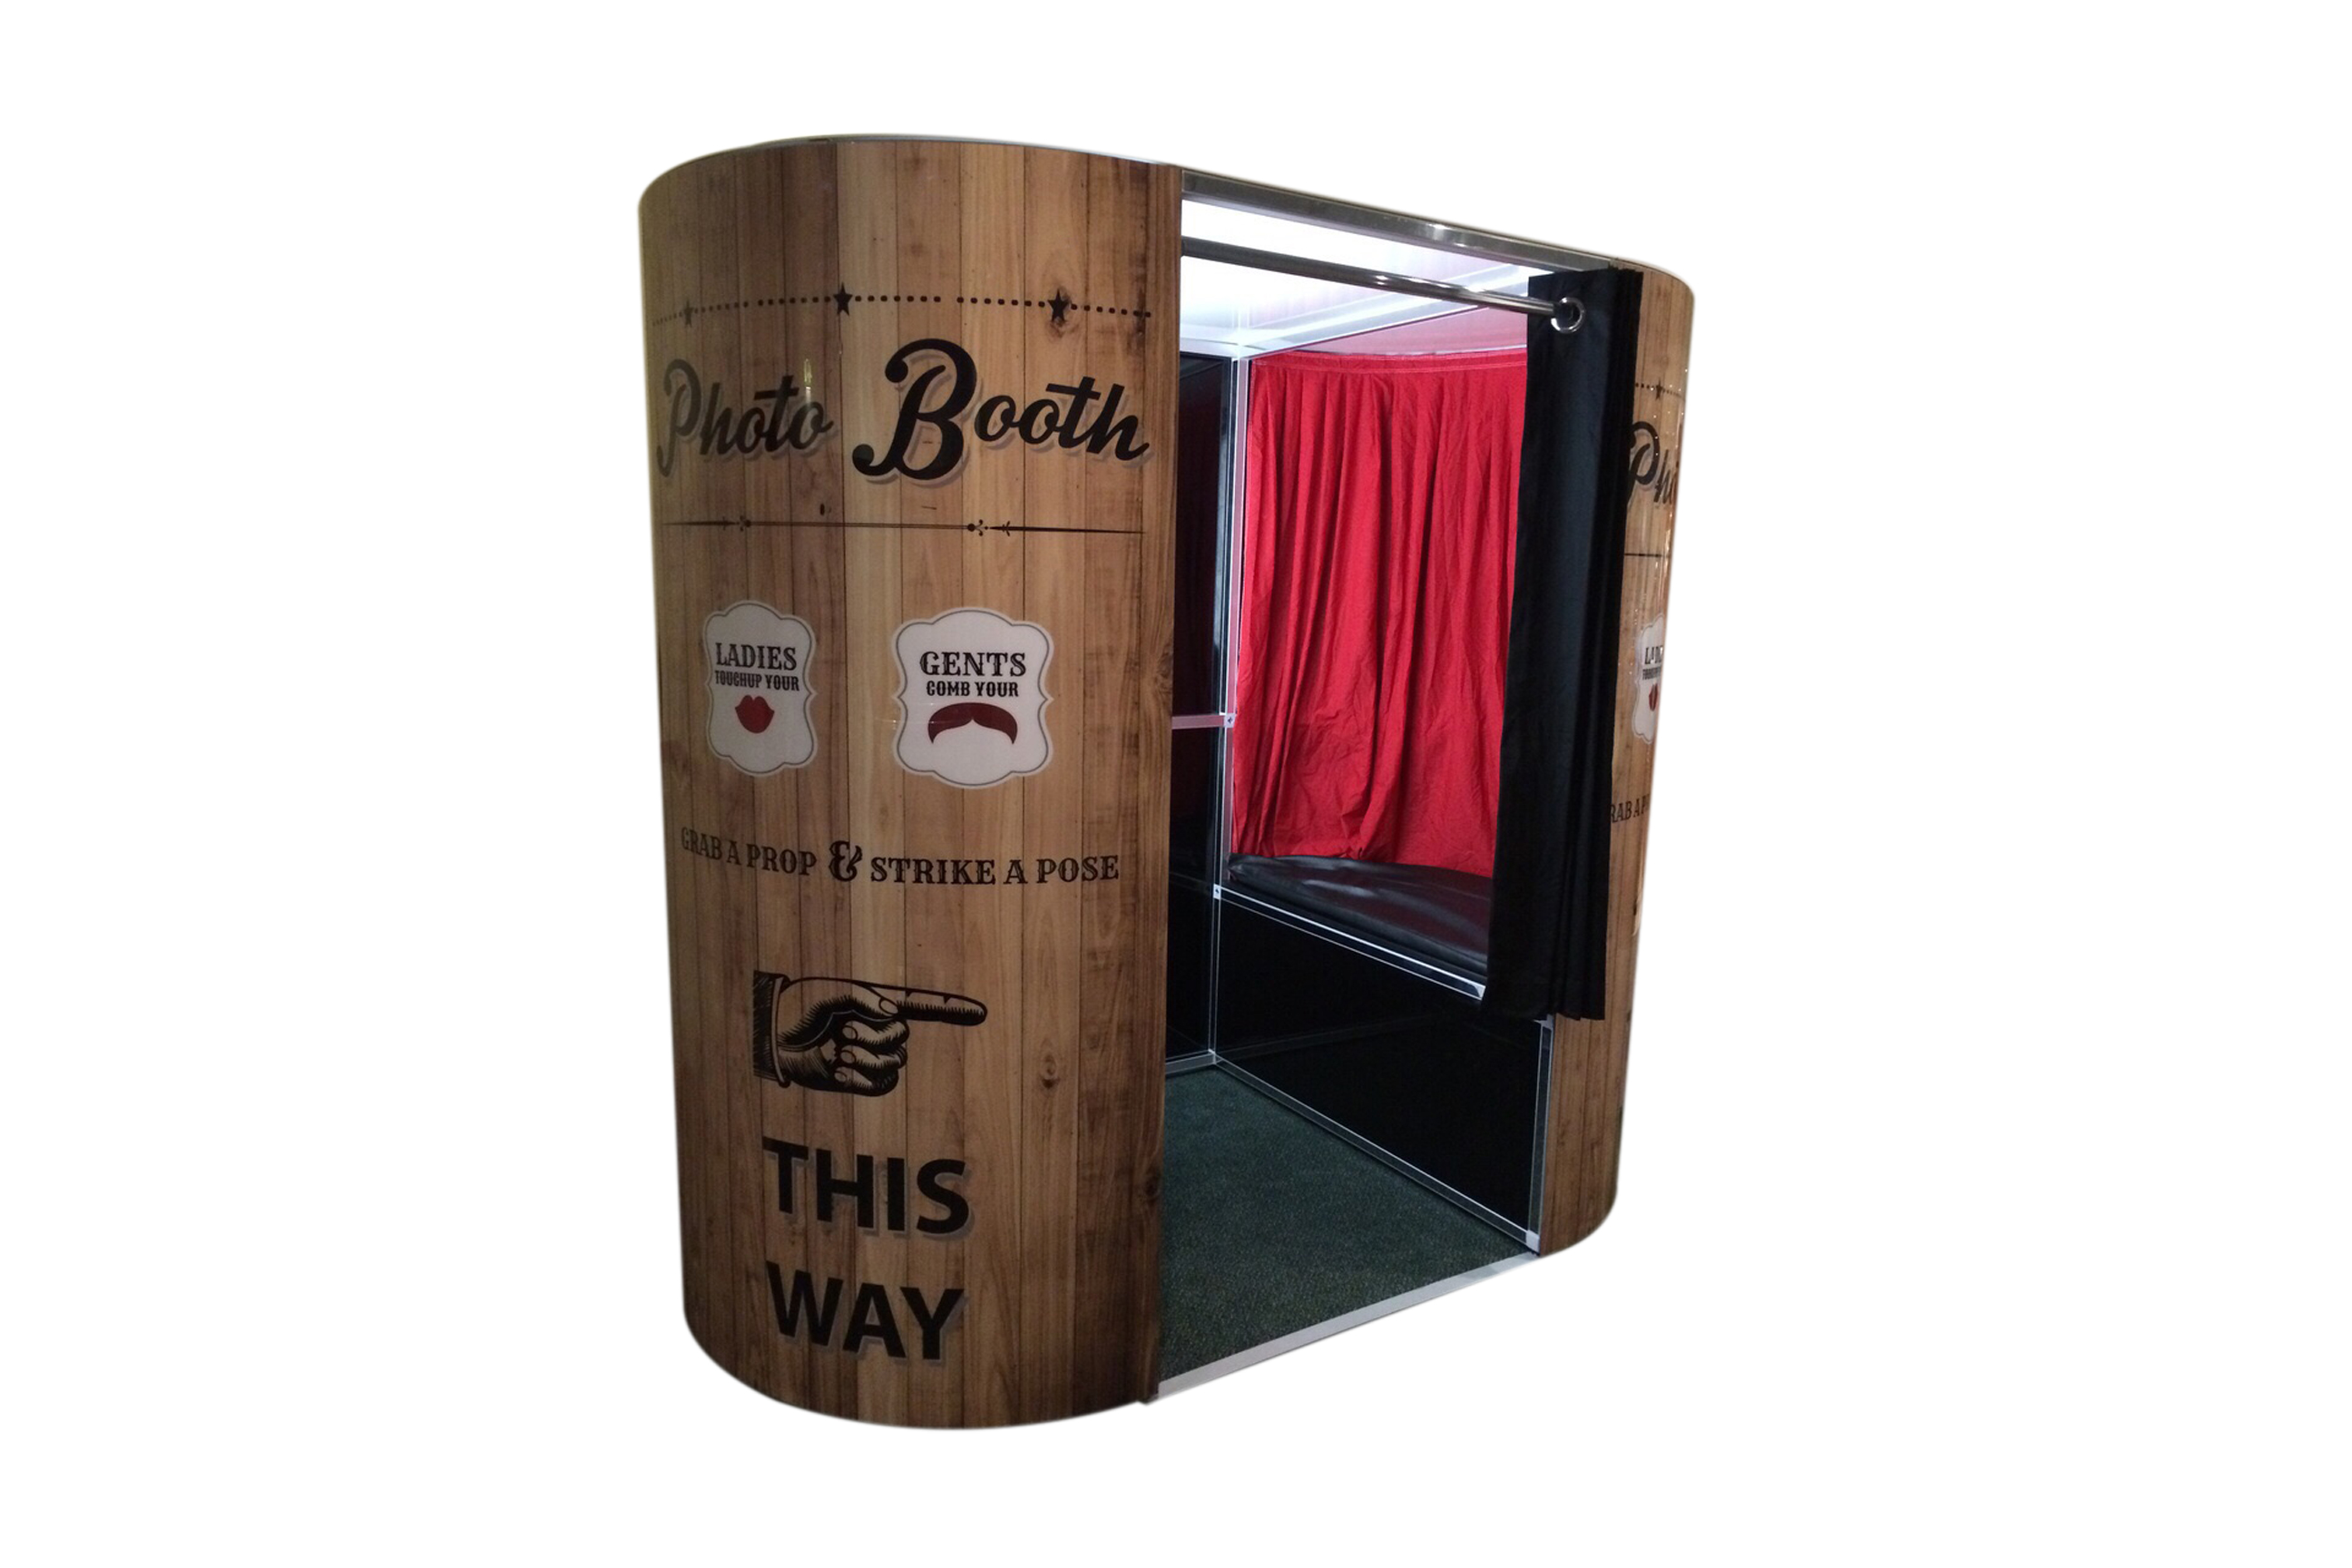 wooden exterior photo booth